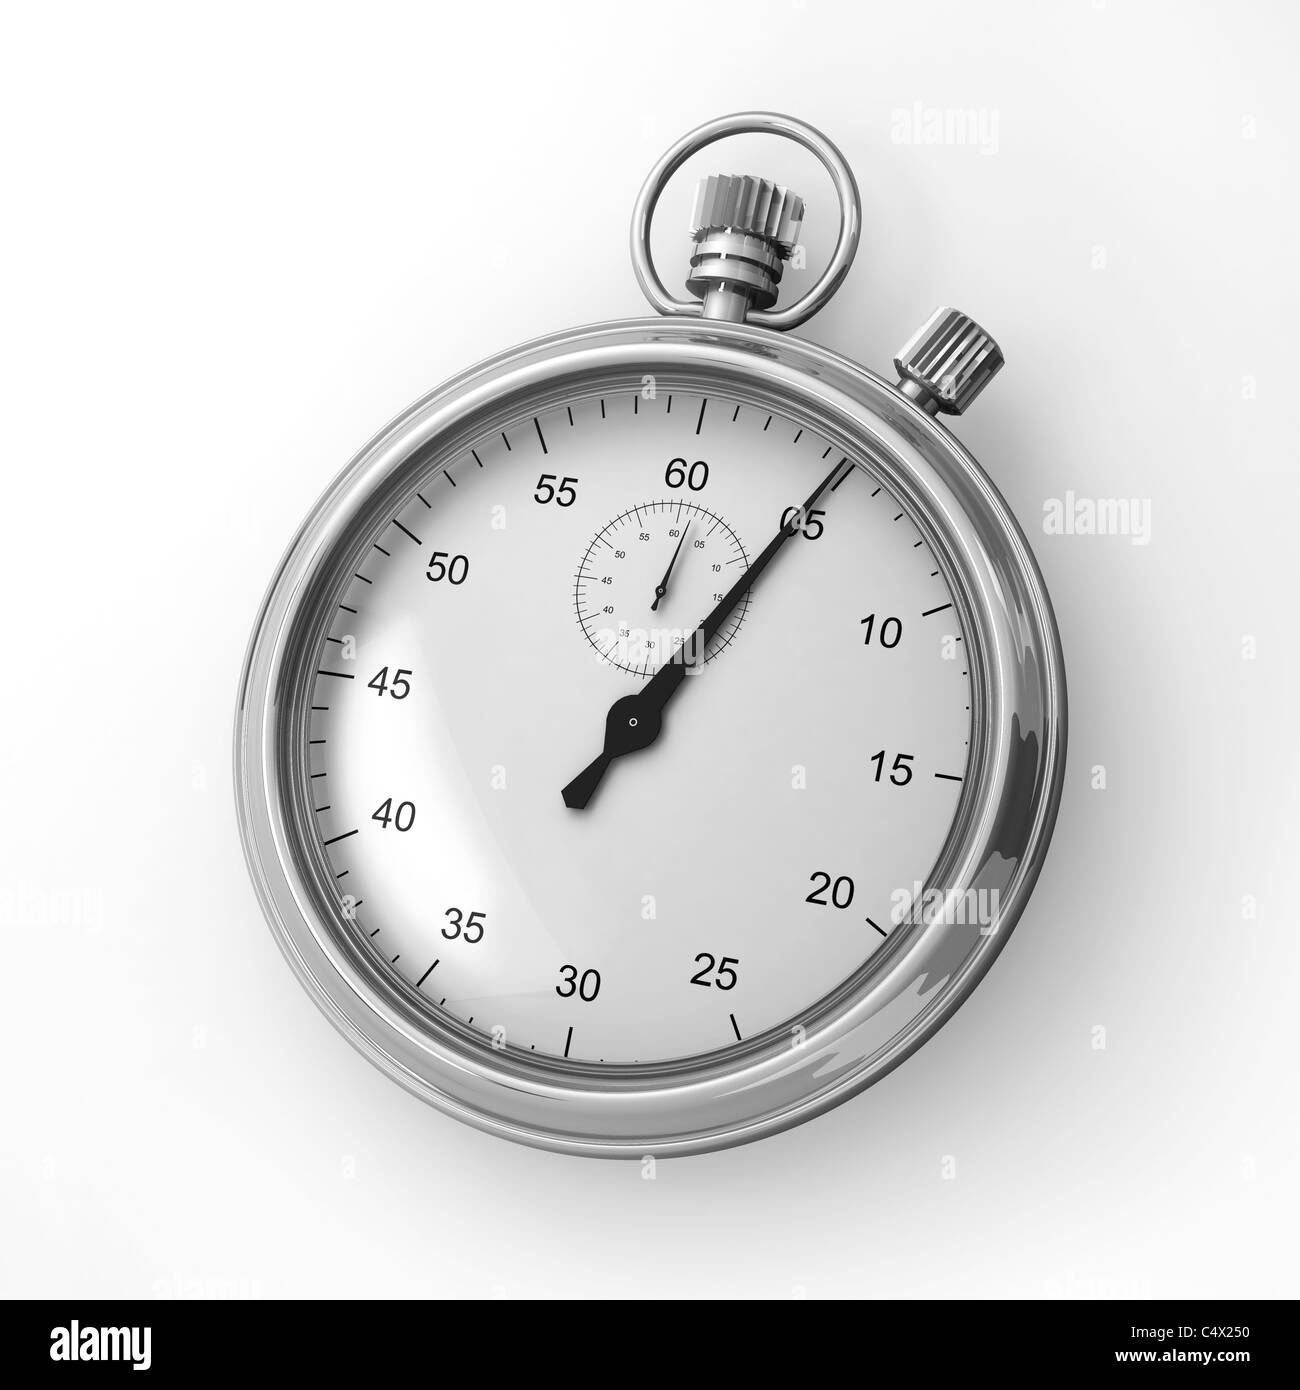 Close up of an analog stopwatch on a white background - Stock Image